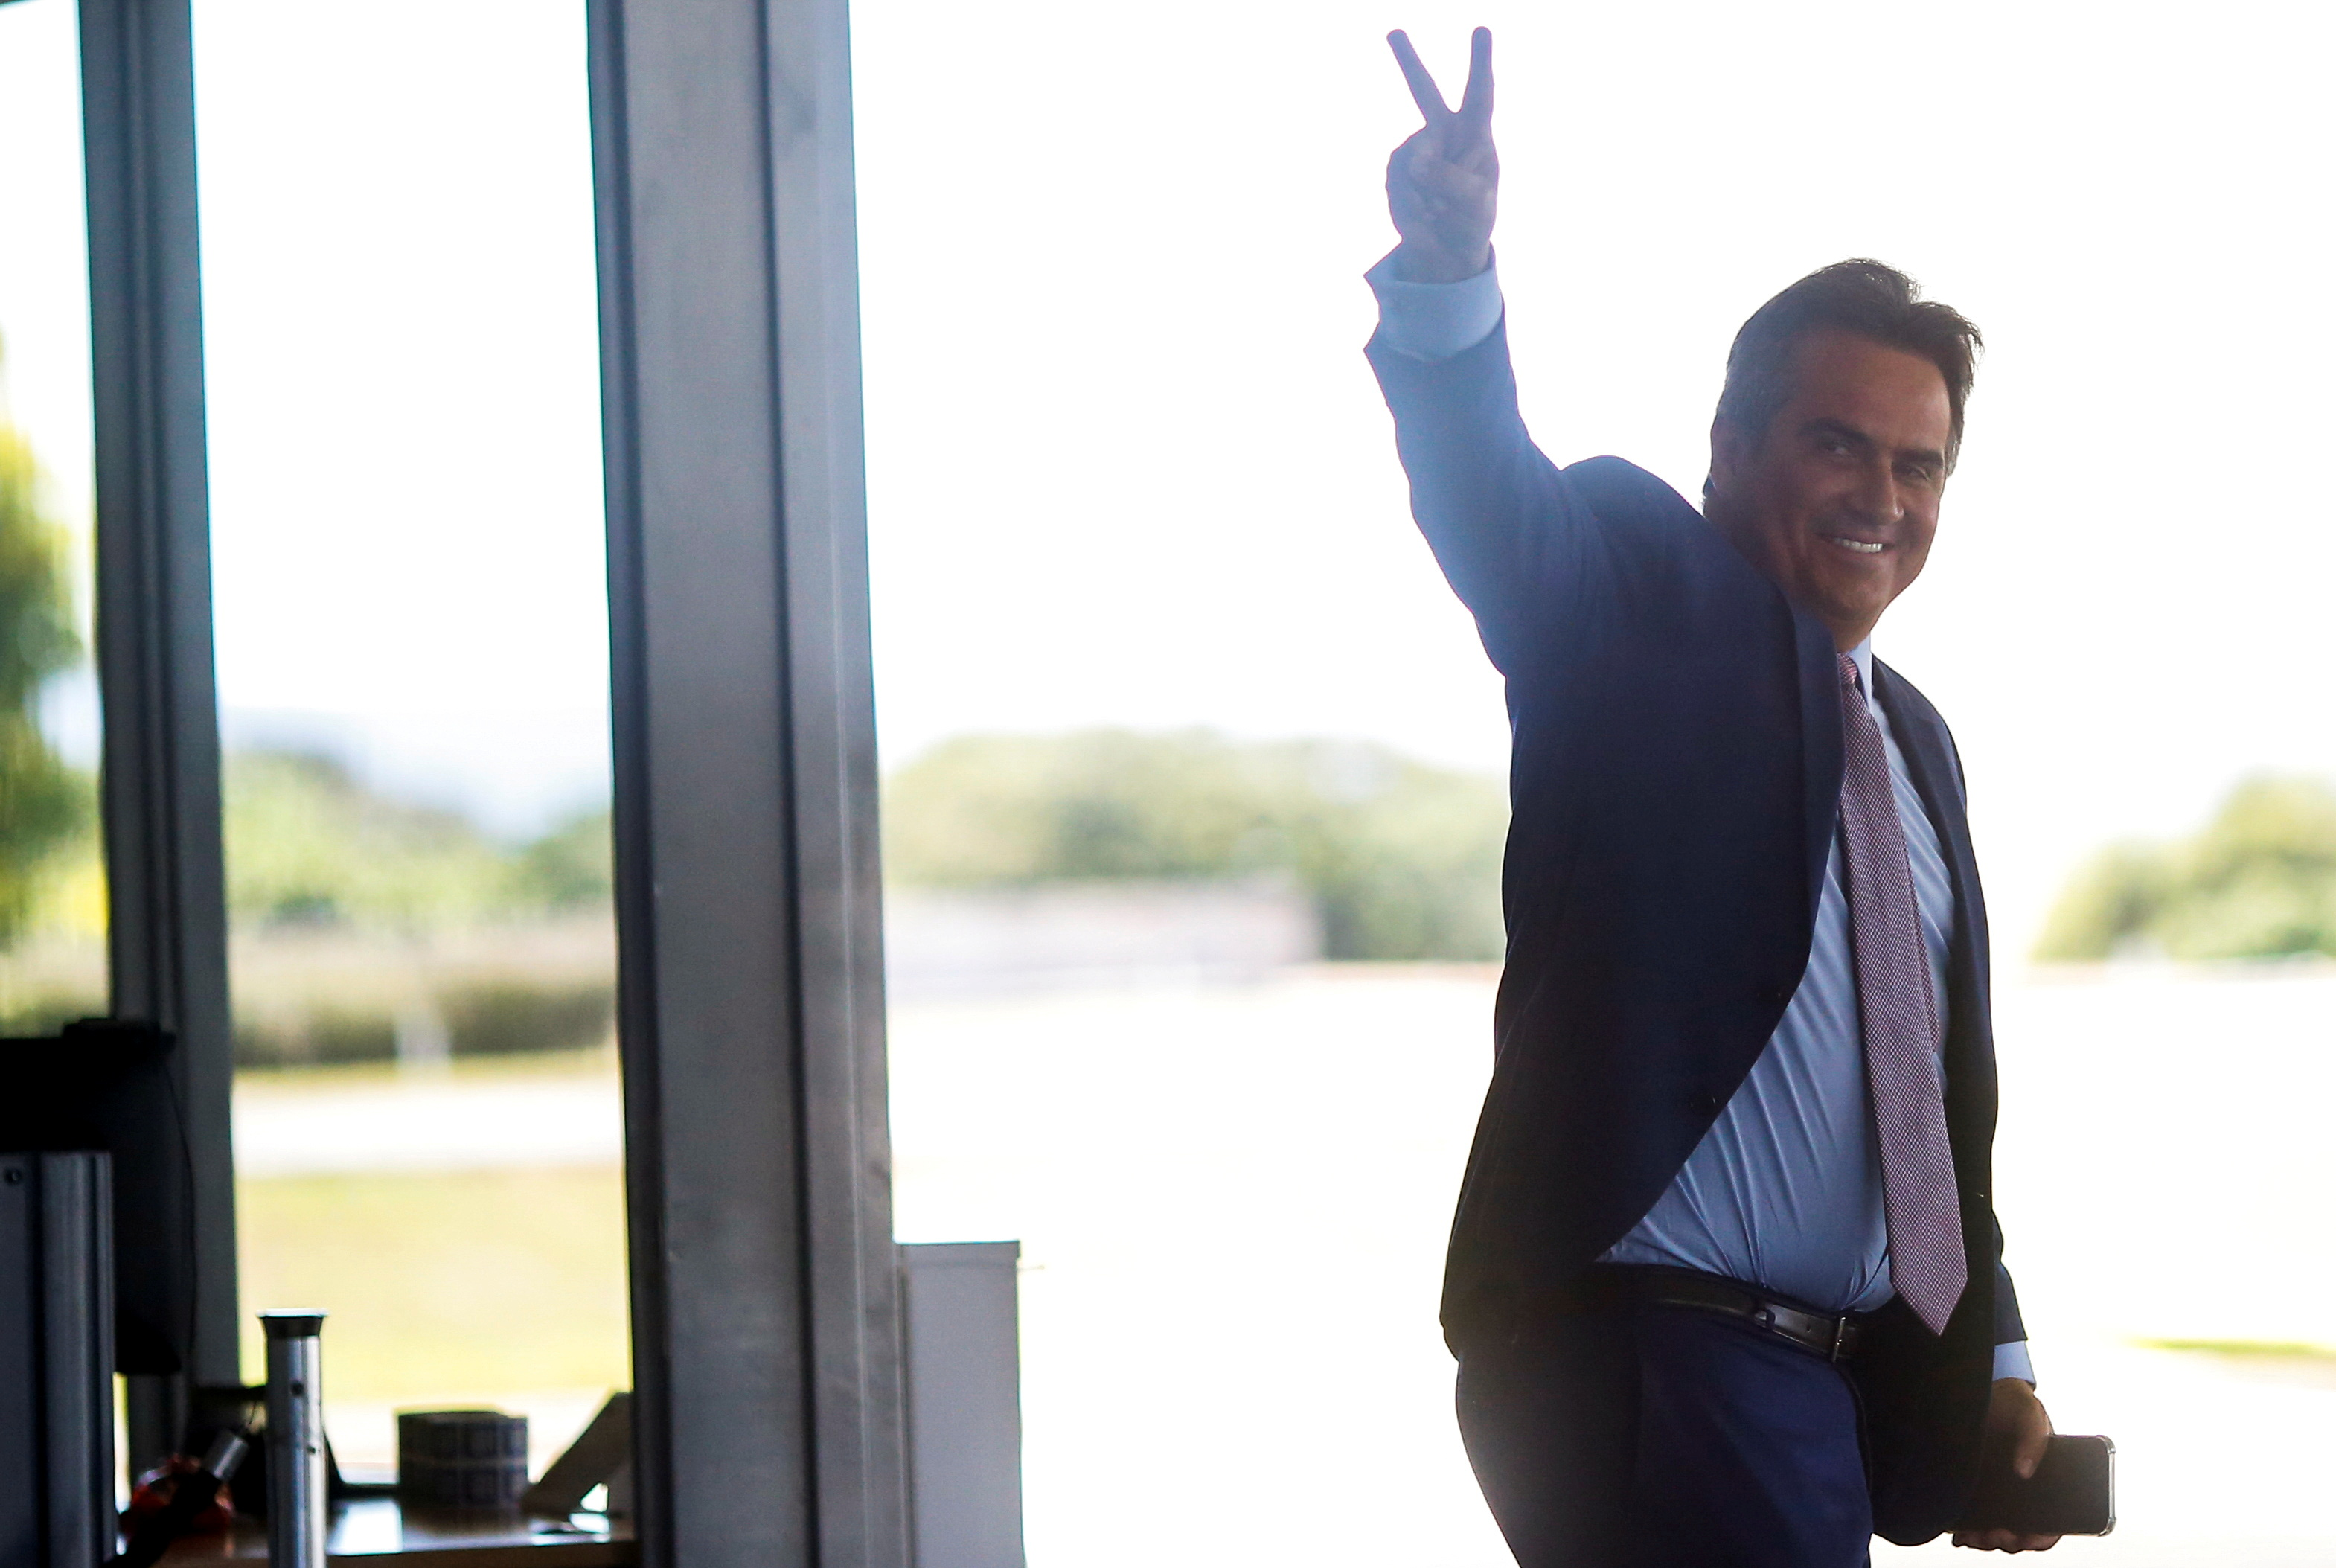 Brazilian Senator Ciro Nogueira gestures after meeting with Brazil's President Jair Bolsonaro (not pictured) at the Planalto Palace in Brasilia, Brazil July 27, 2021. REUTERS/Adriano Machado/File Photo